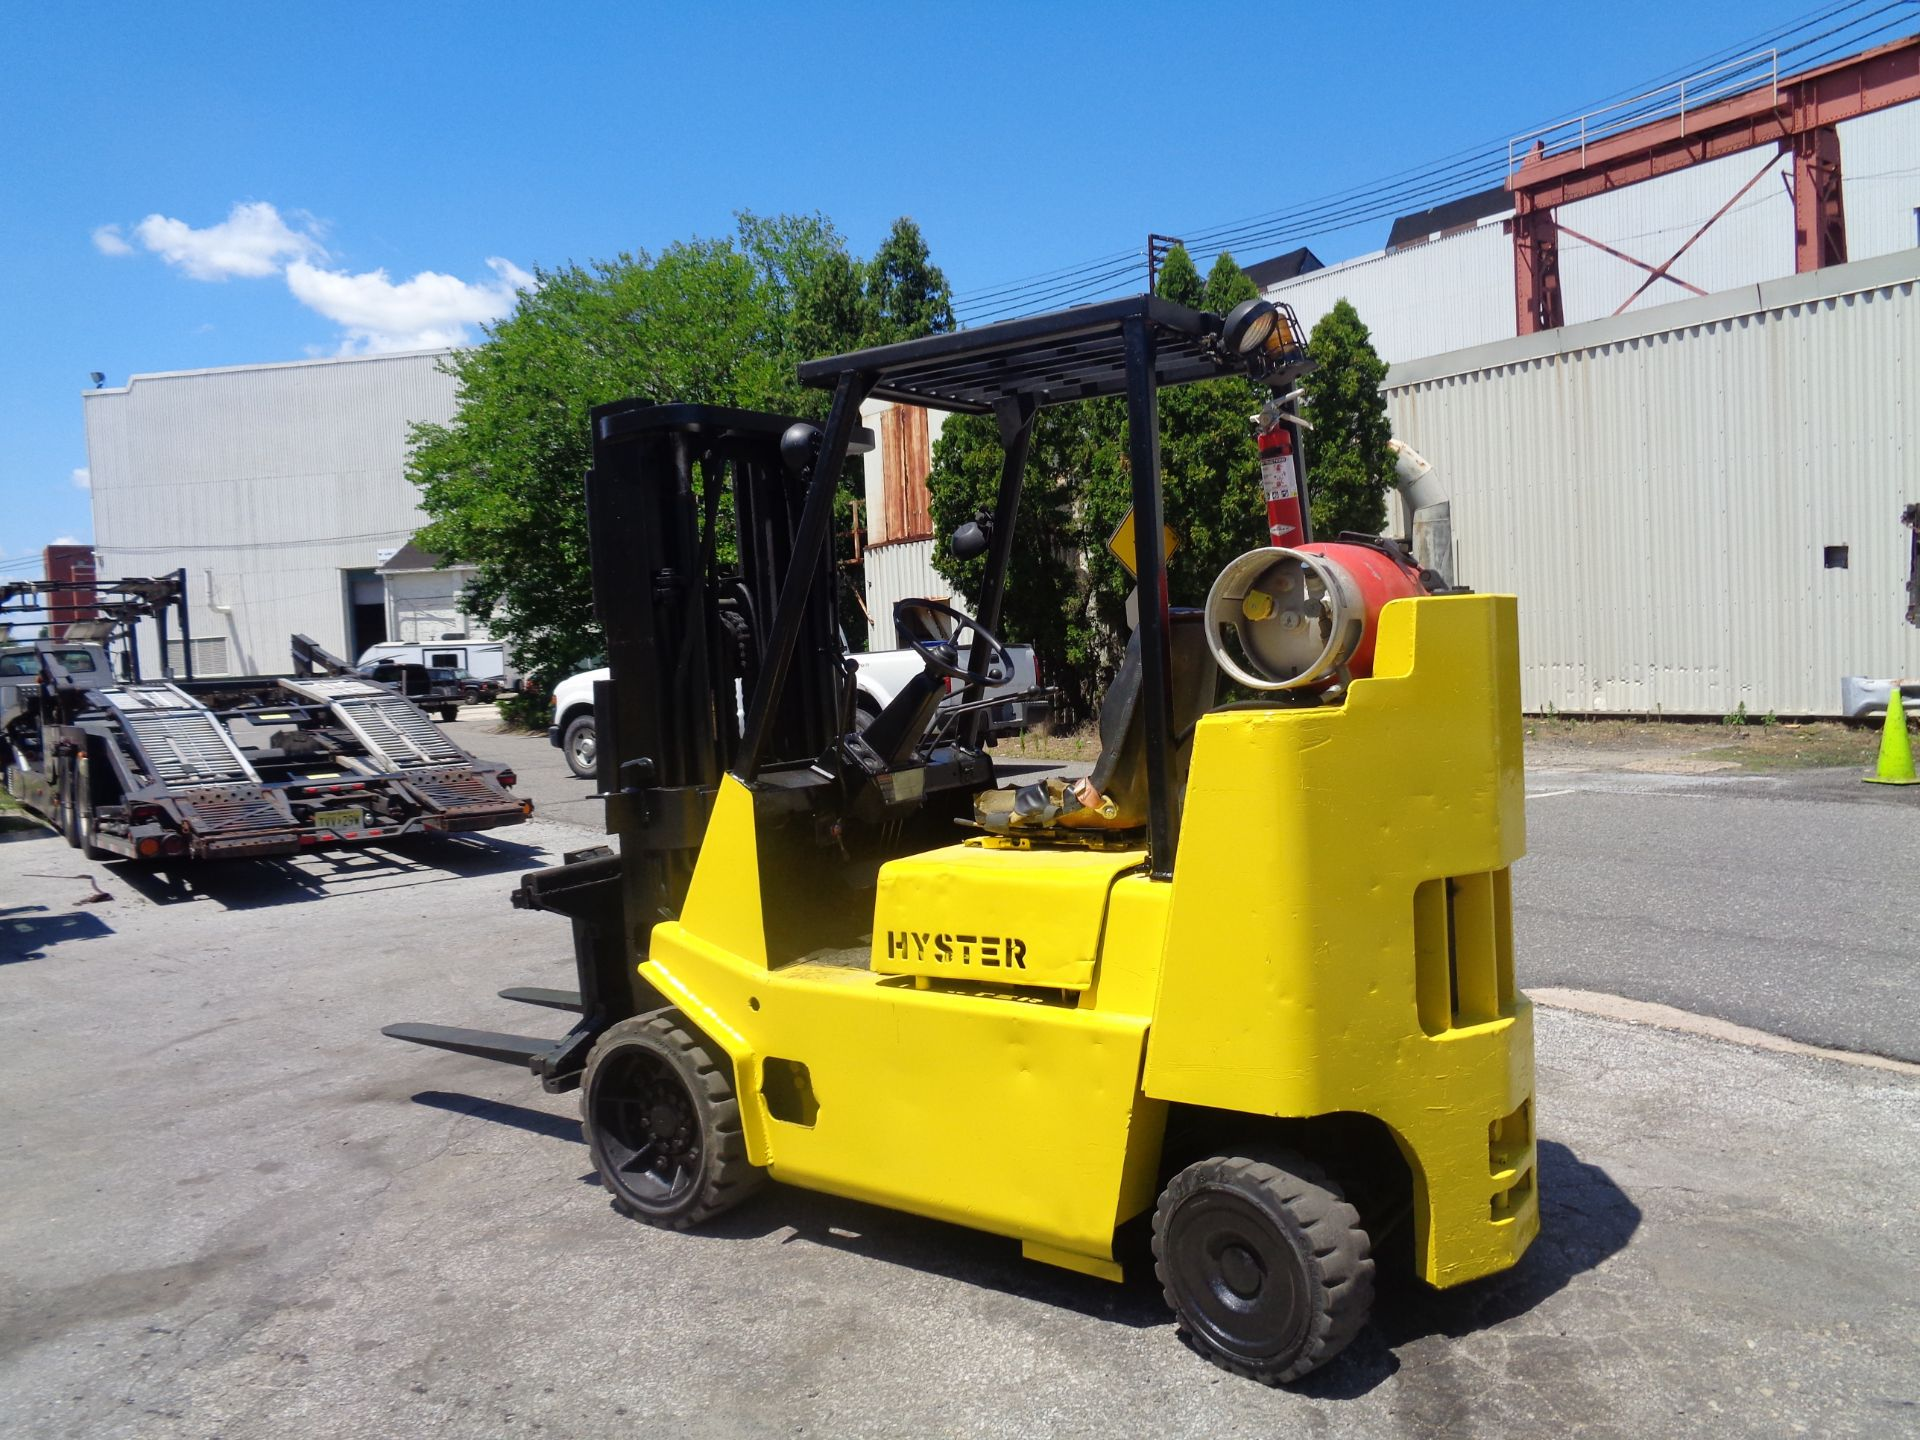 Hyster S80XL 8,000 lbs Forklift - Image 2 of 13